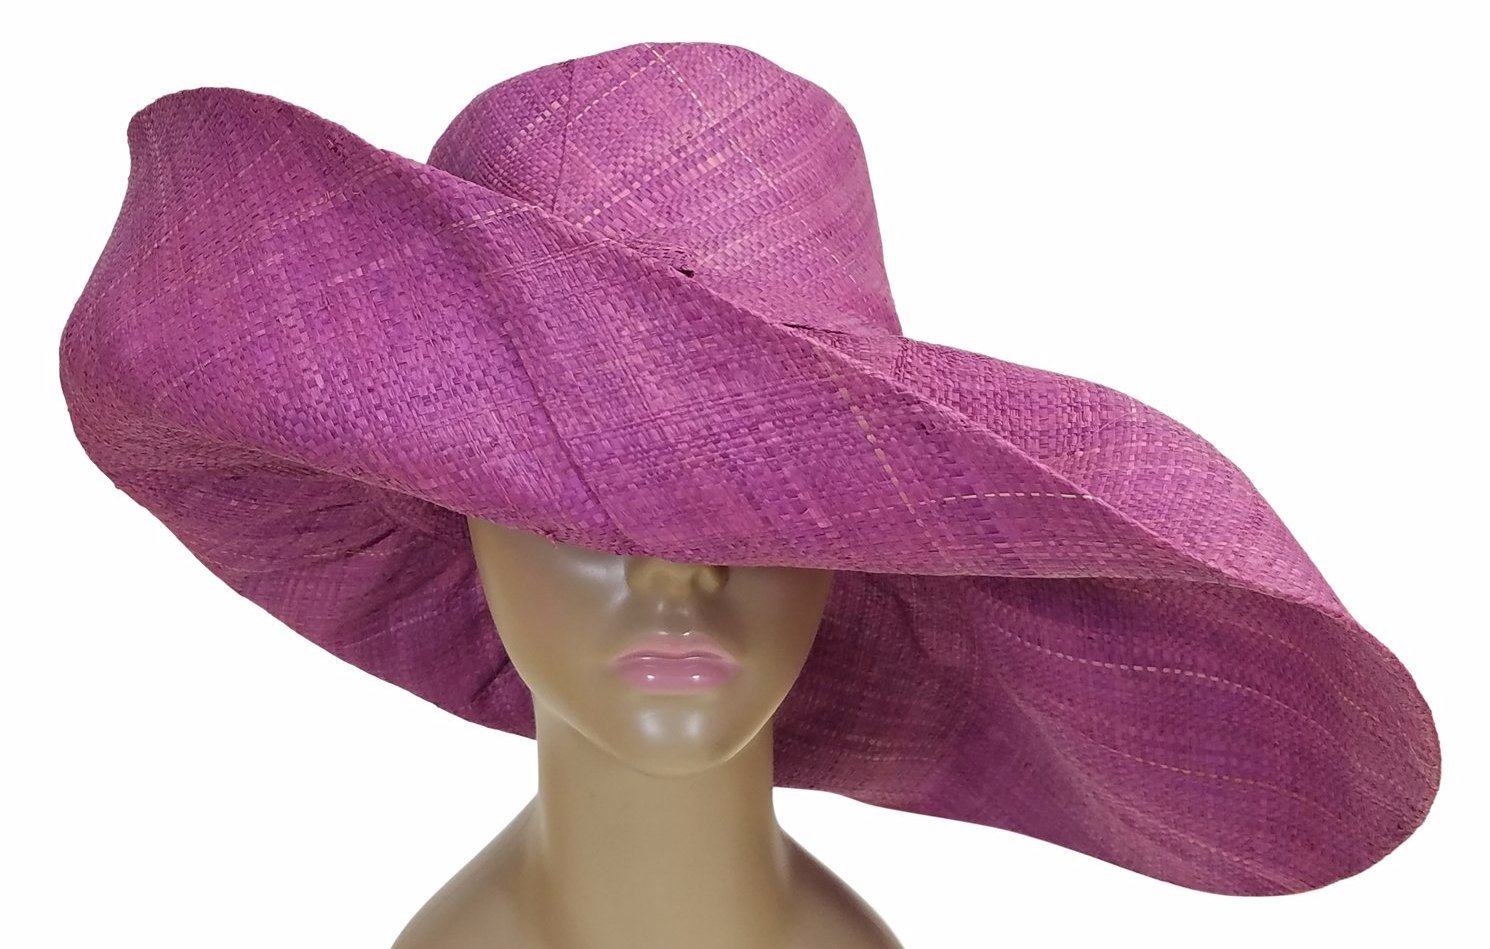 Tulinagwe: Authentic African Hand Made Lavender Madagascar Big Brim Raffia Sun Hat